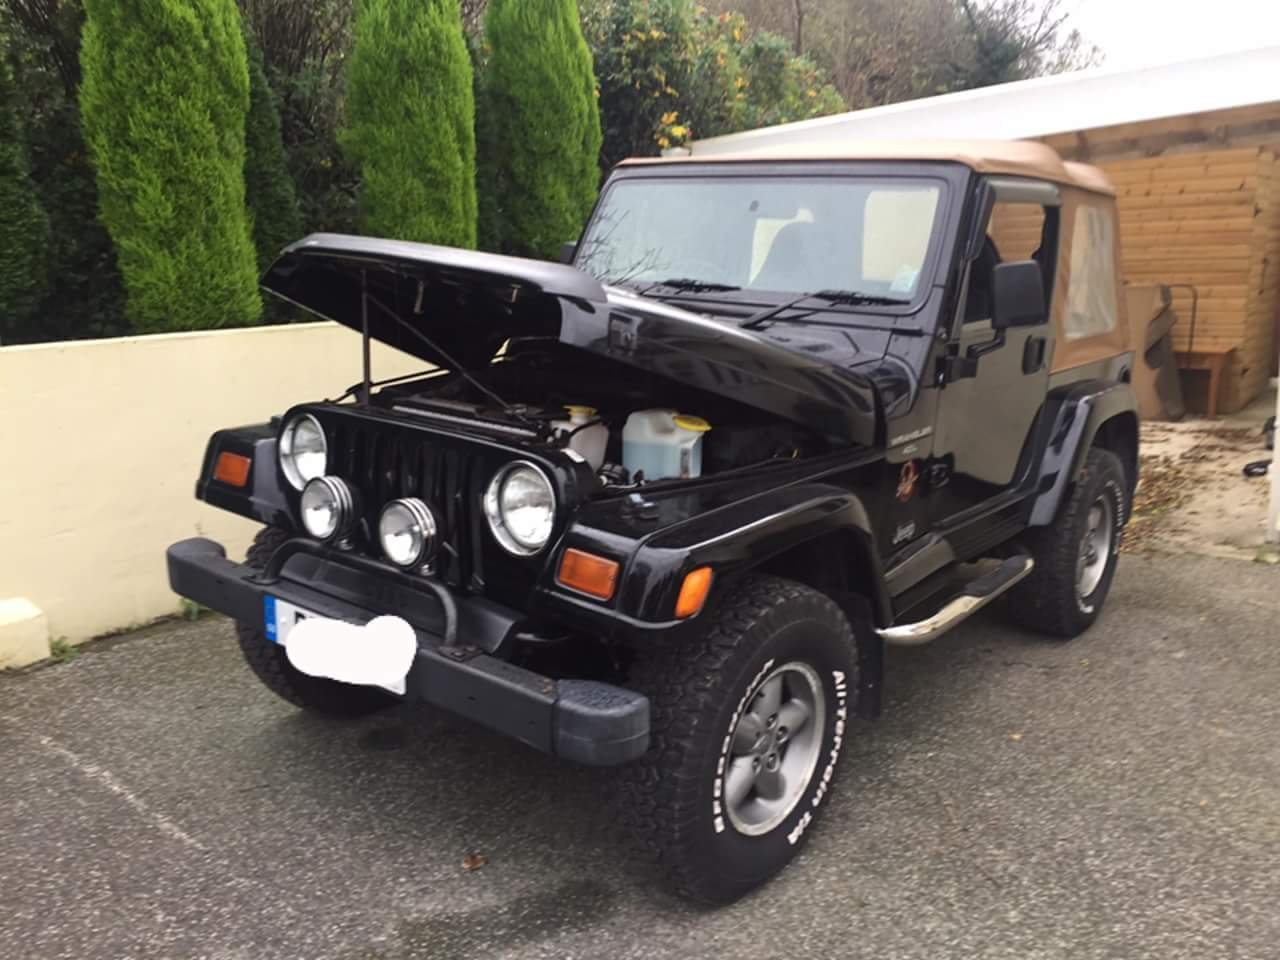 1997 4.0 manual jeep wrangler sahara For Sale (picture 5 of 6)